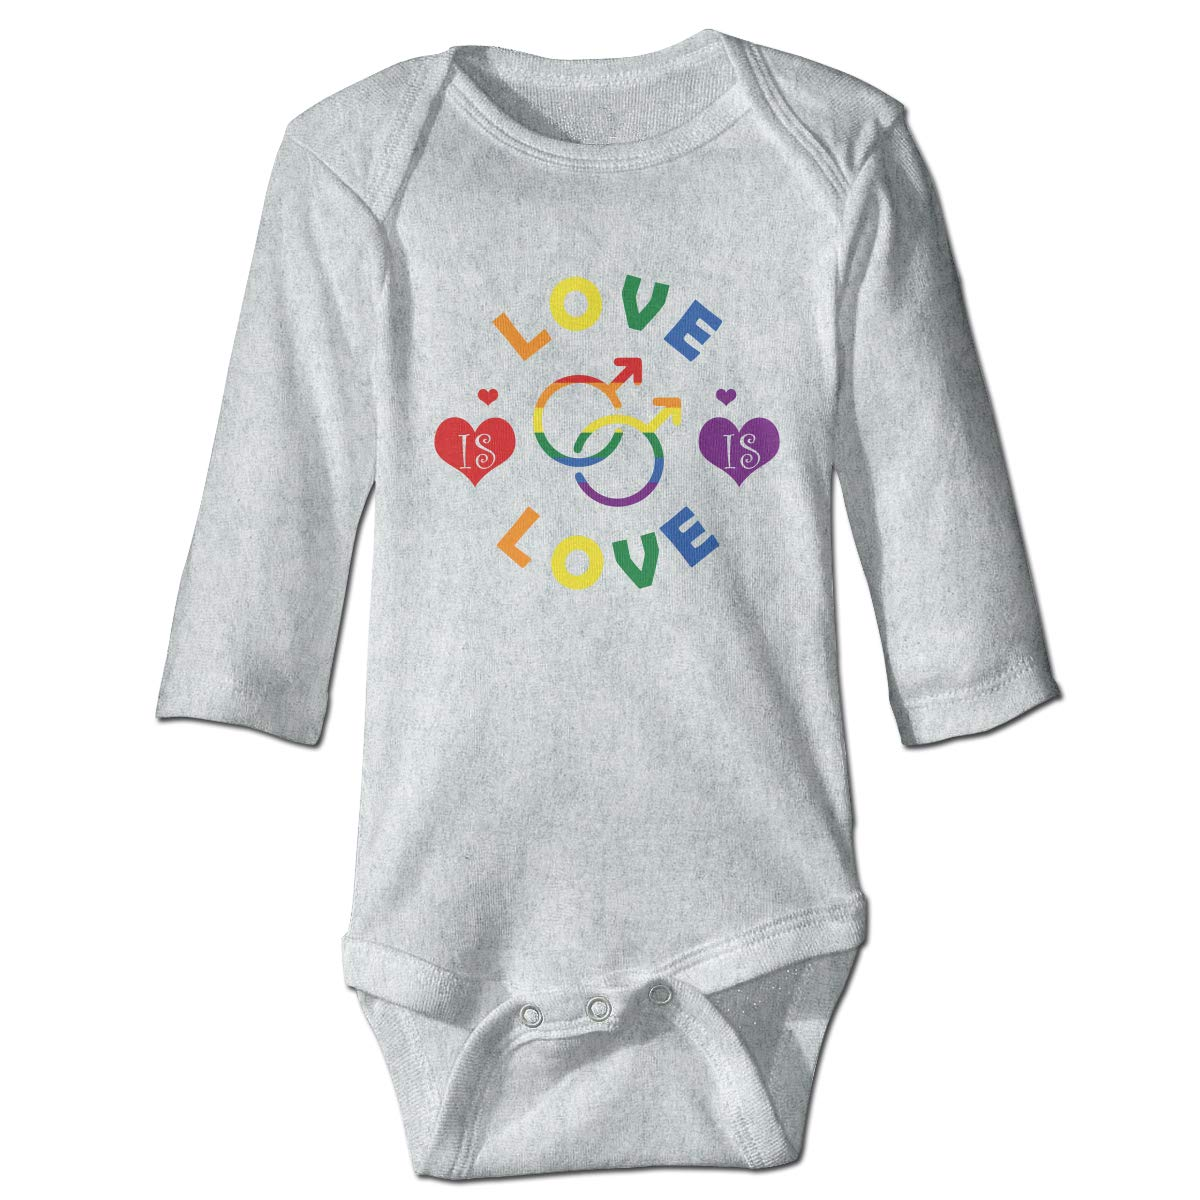 Homosexuality Love Graphic Newborn Baby Long Sleeve Bodysuit Romper Infant Summer Clothing